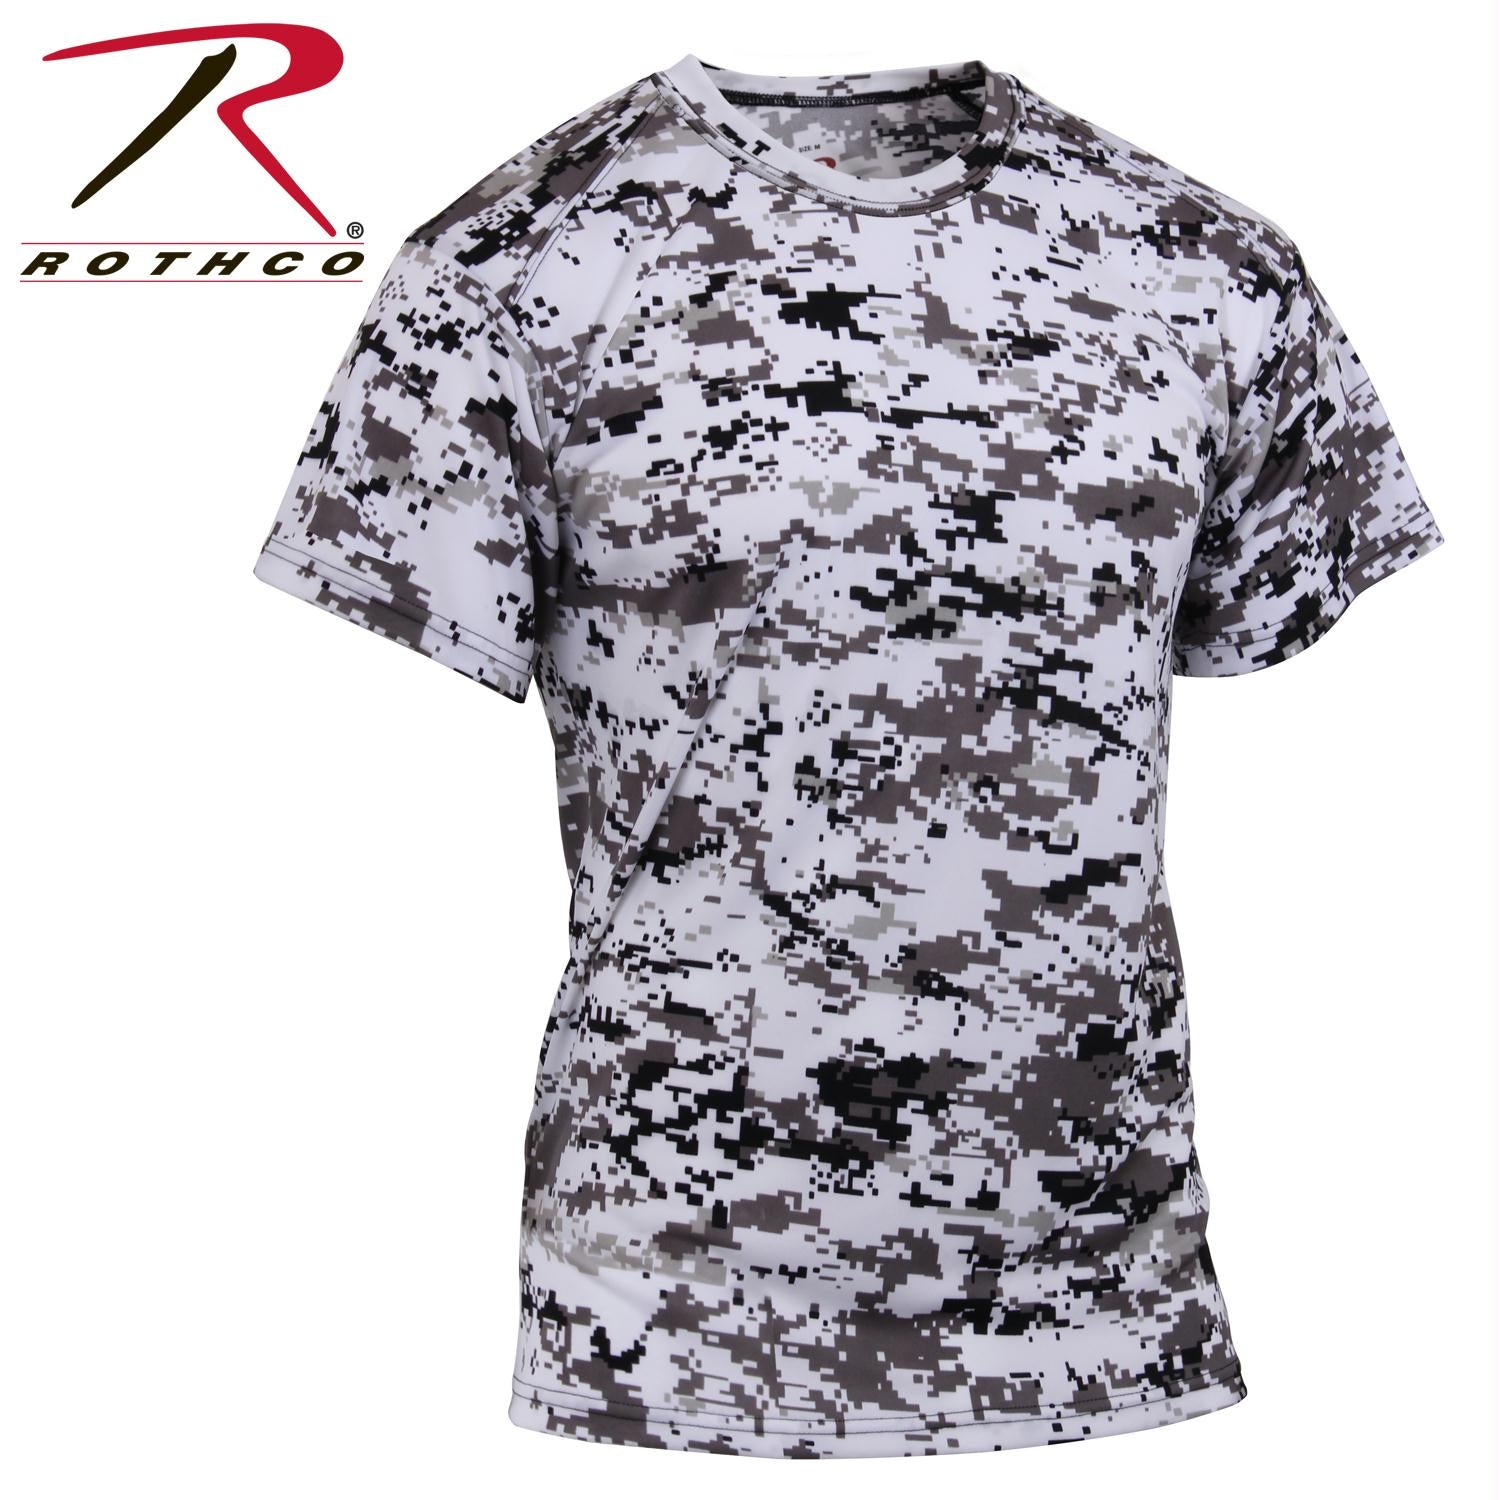 Rothco Polyester Performance T-Shirt - City Digital Camo / L